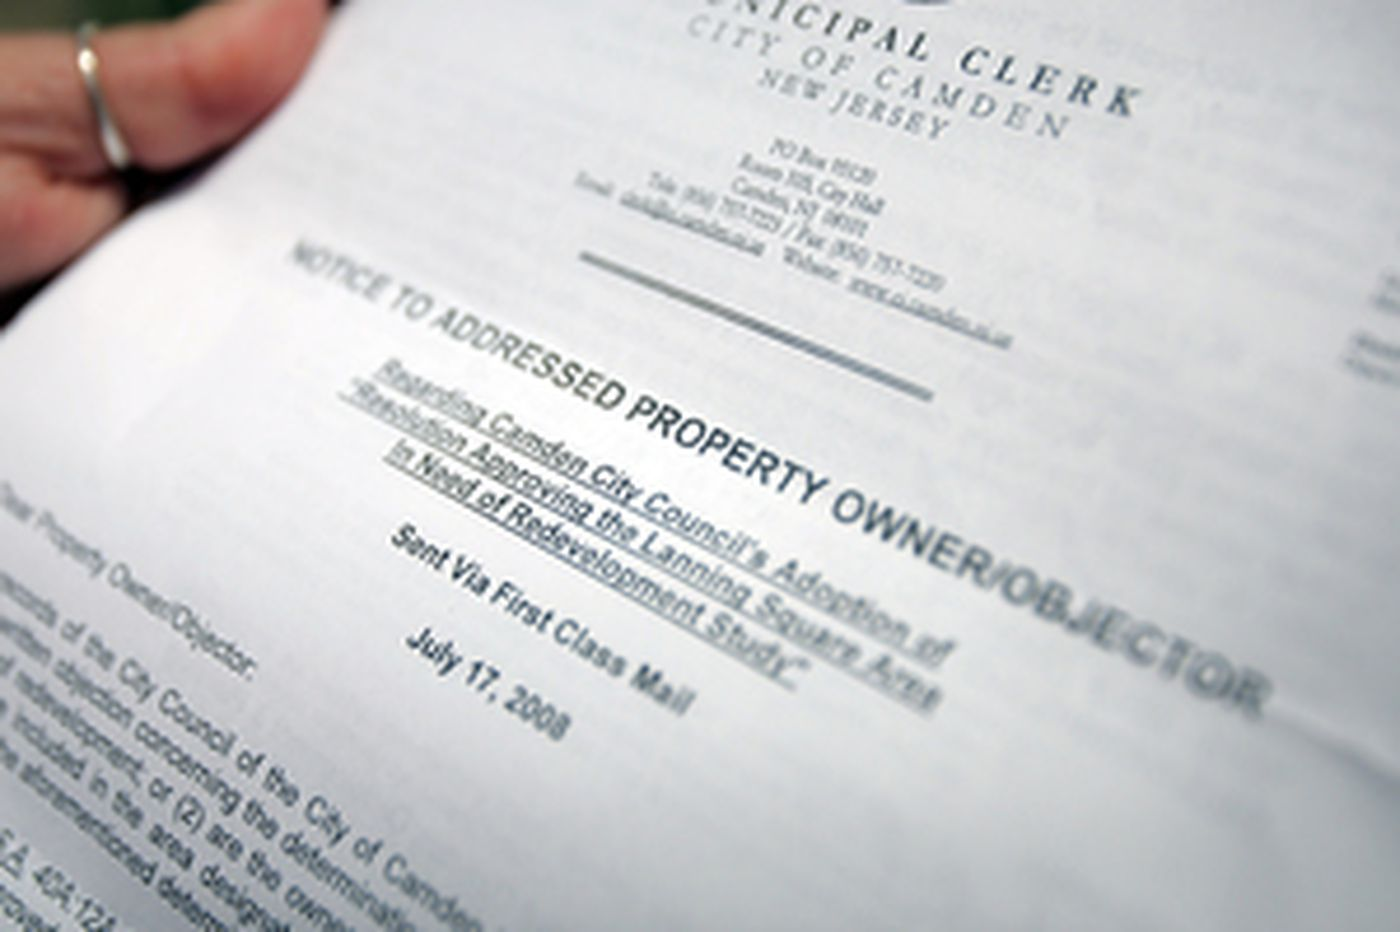 Camden letter makes residents fearful of eminent domain